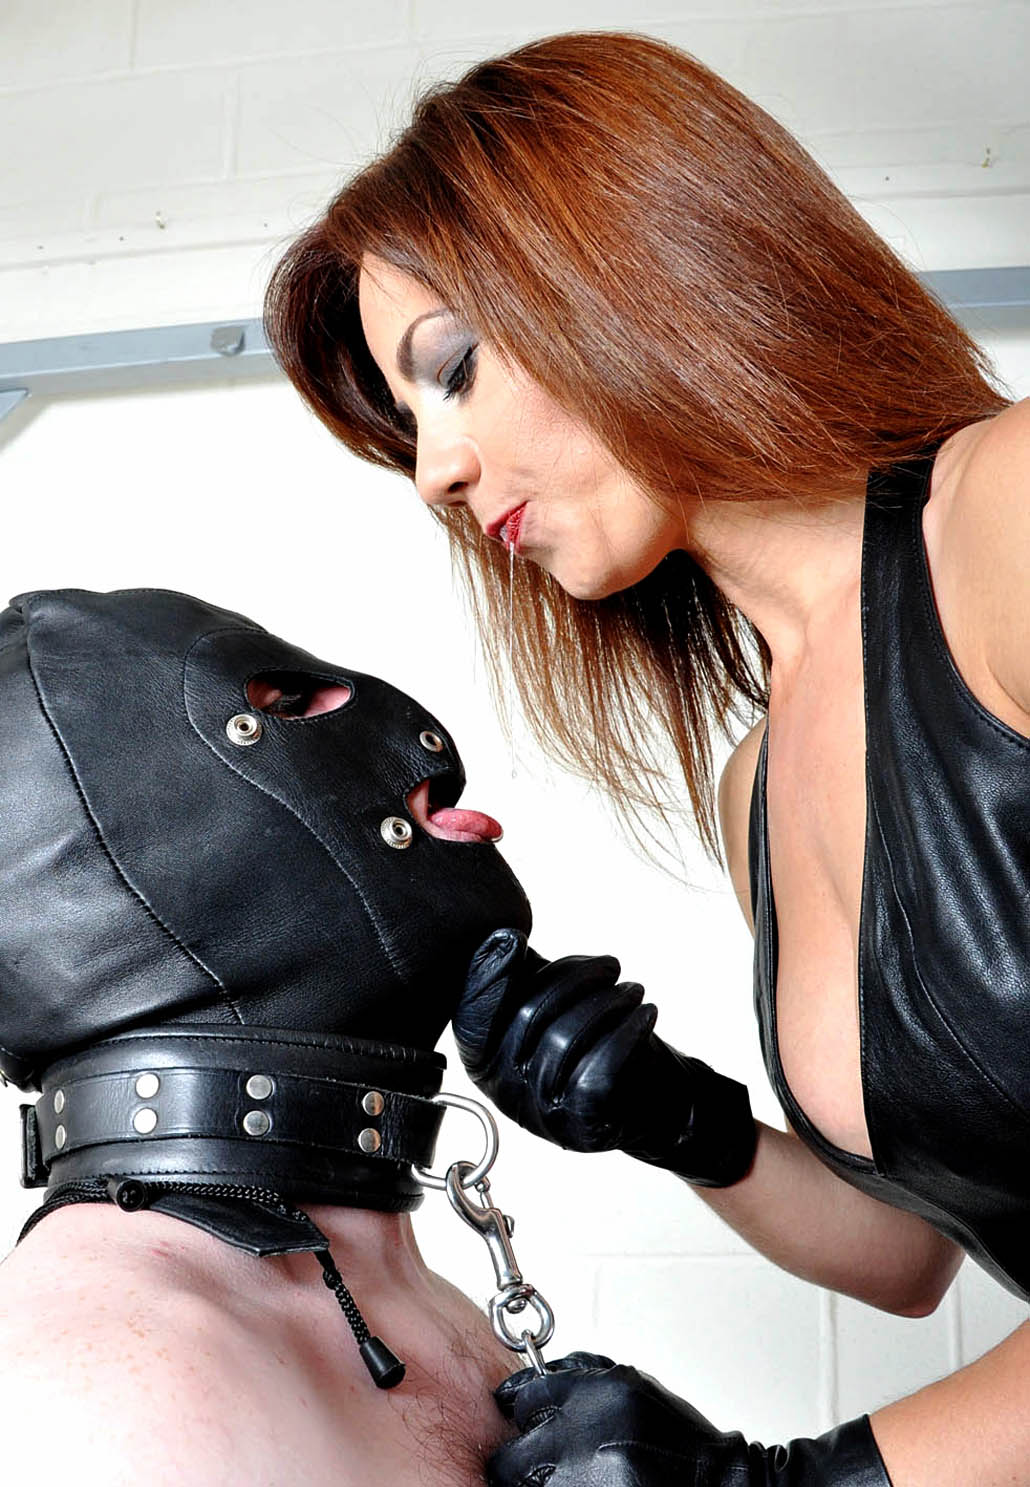 Age leather chat femdom hypnosis tasteful softcore